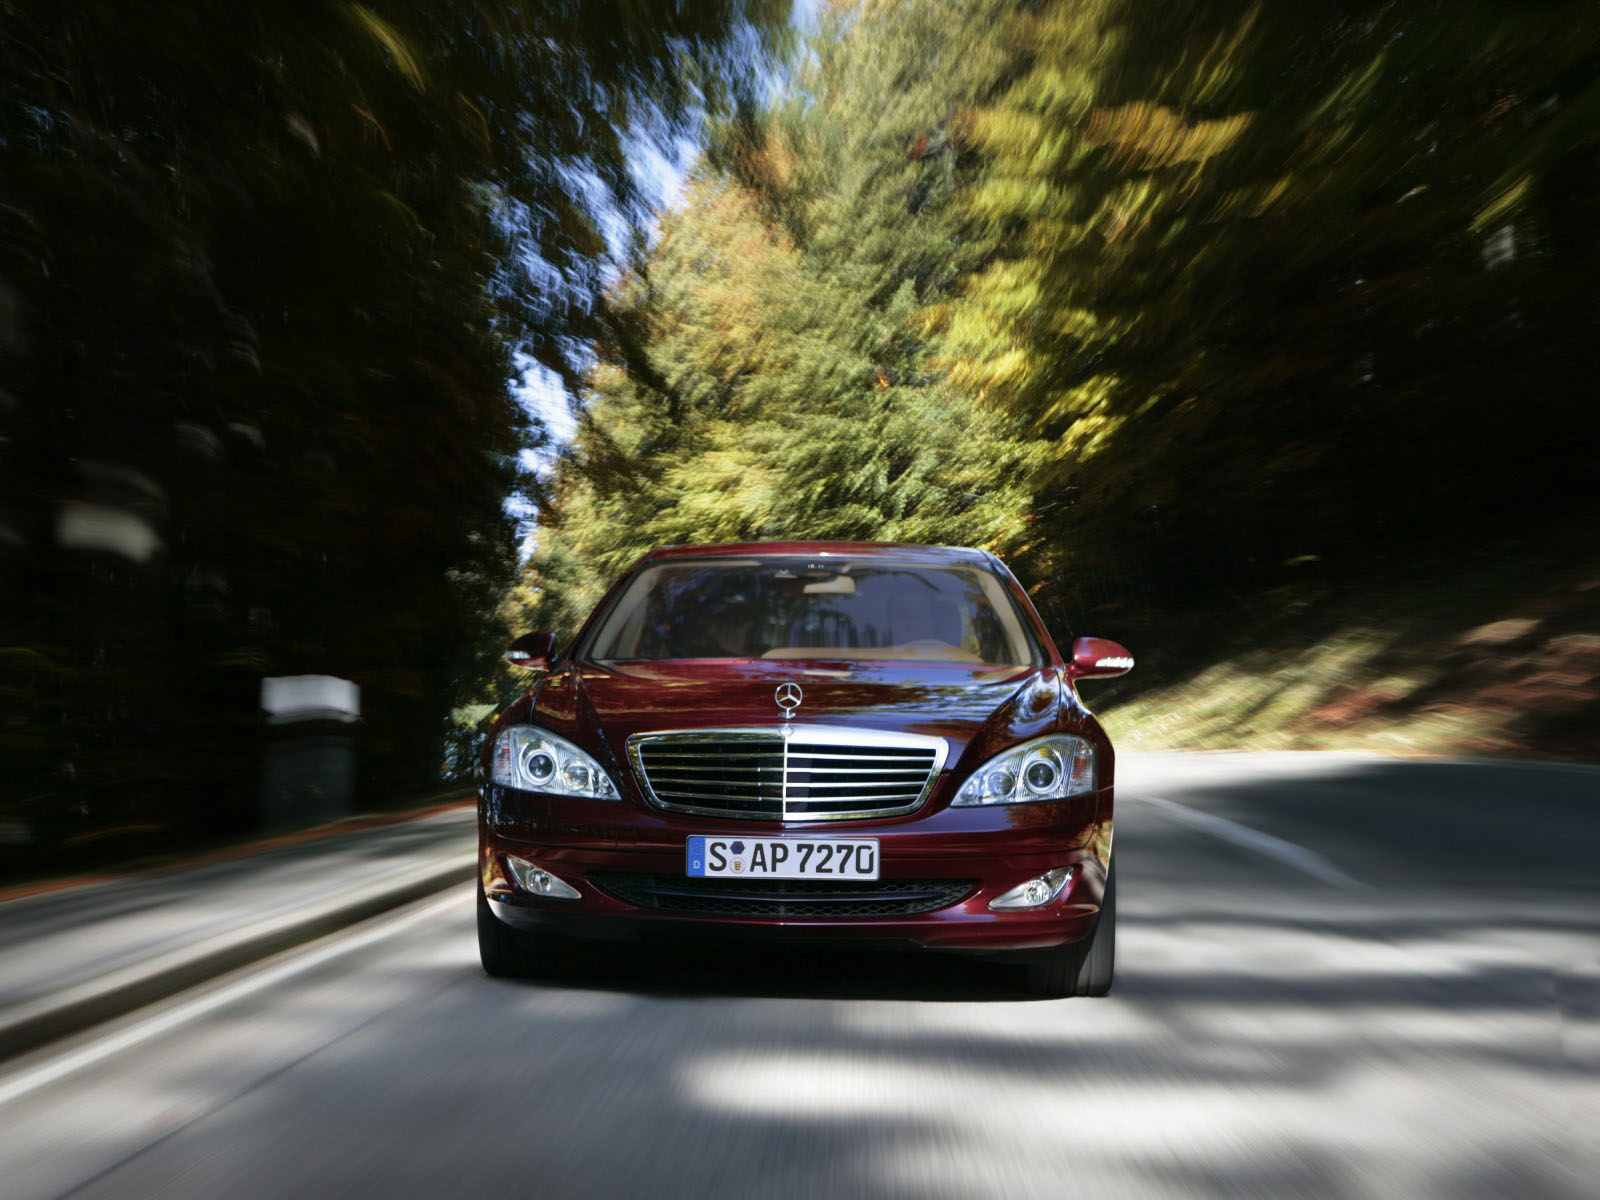 Mercedes-Benz S-Class red #4